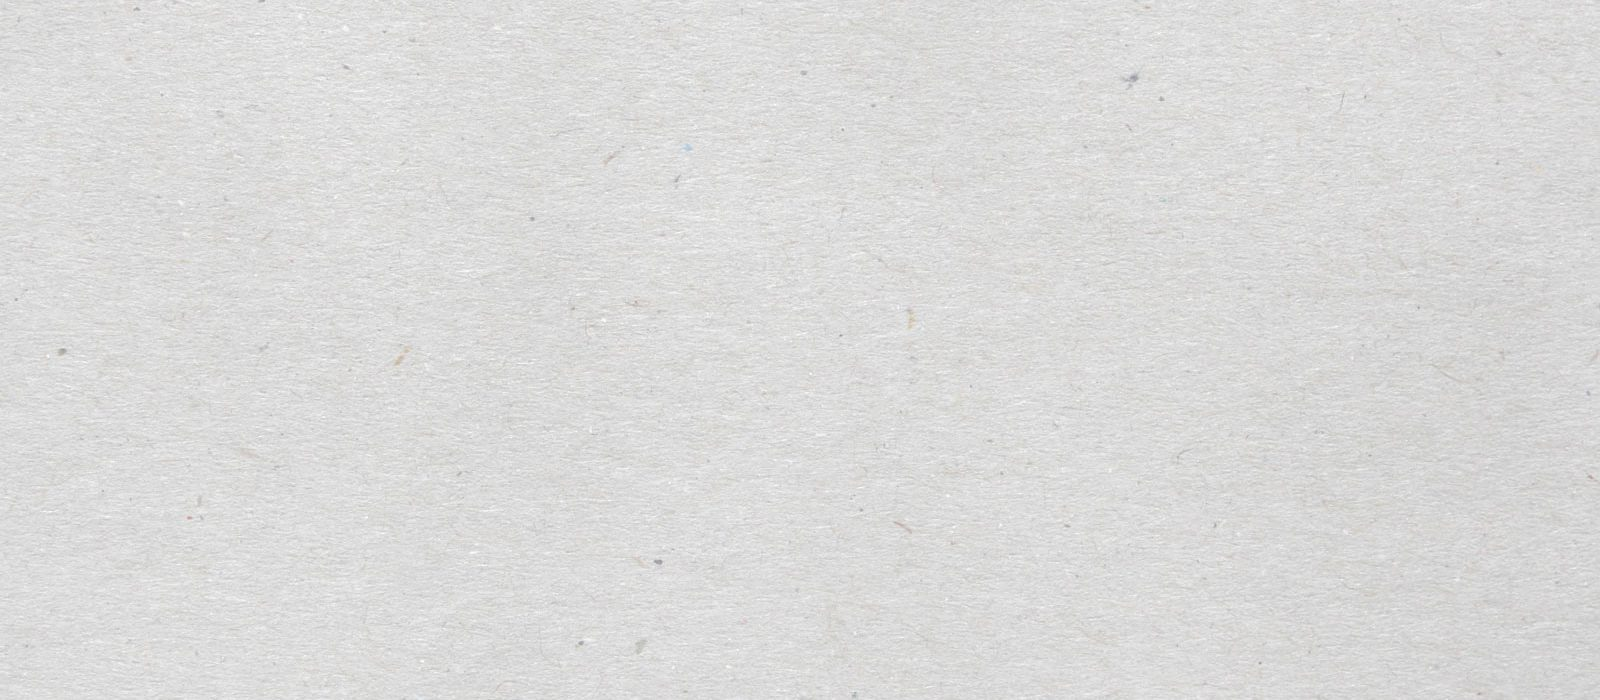 white-paper-texture-with-flecks